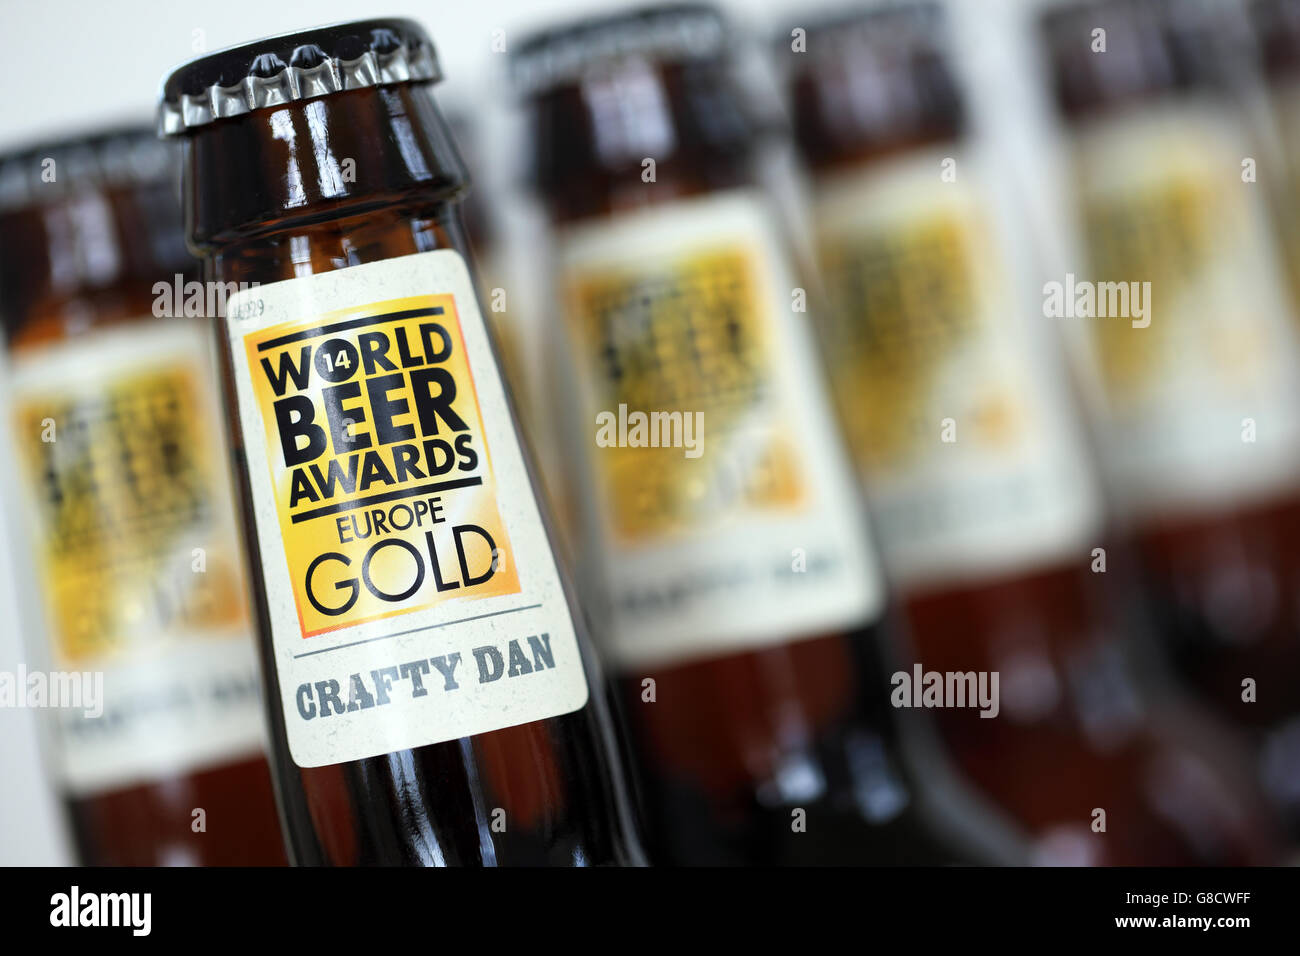 World Beer Awards Europe Gold label on Crafty Dan beers by Daniel Thwaites of Blackburn, England - Stock Image